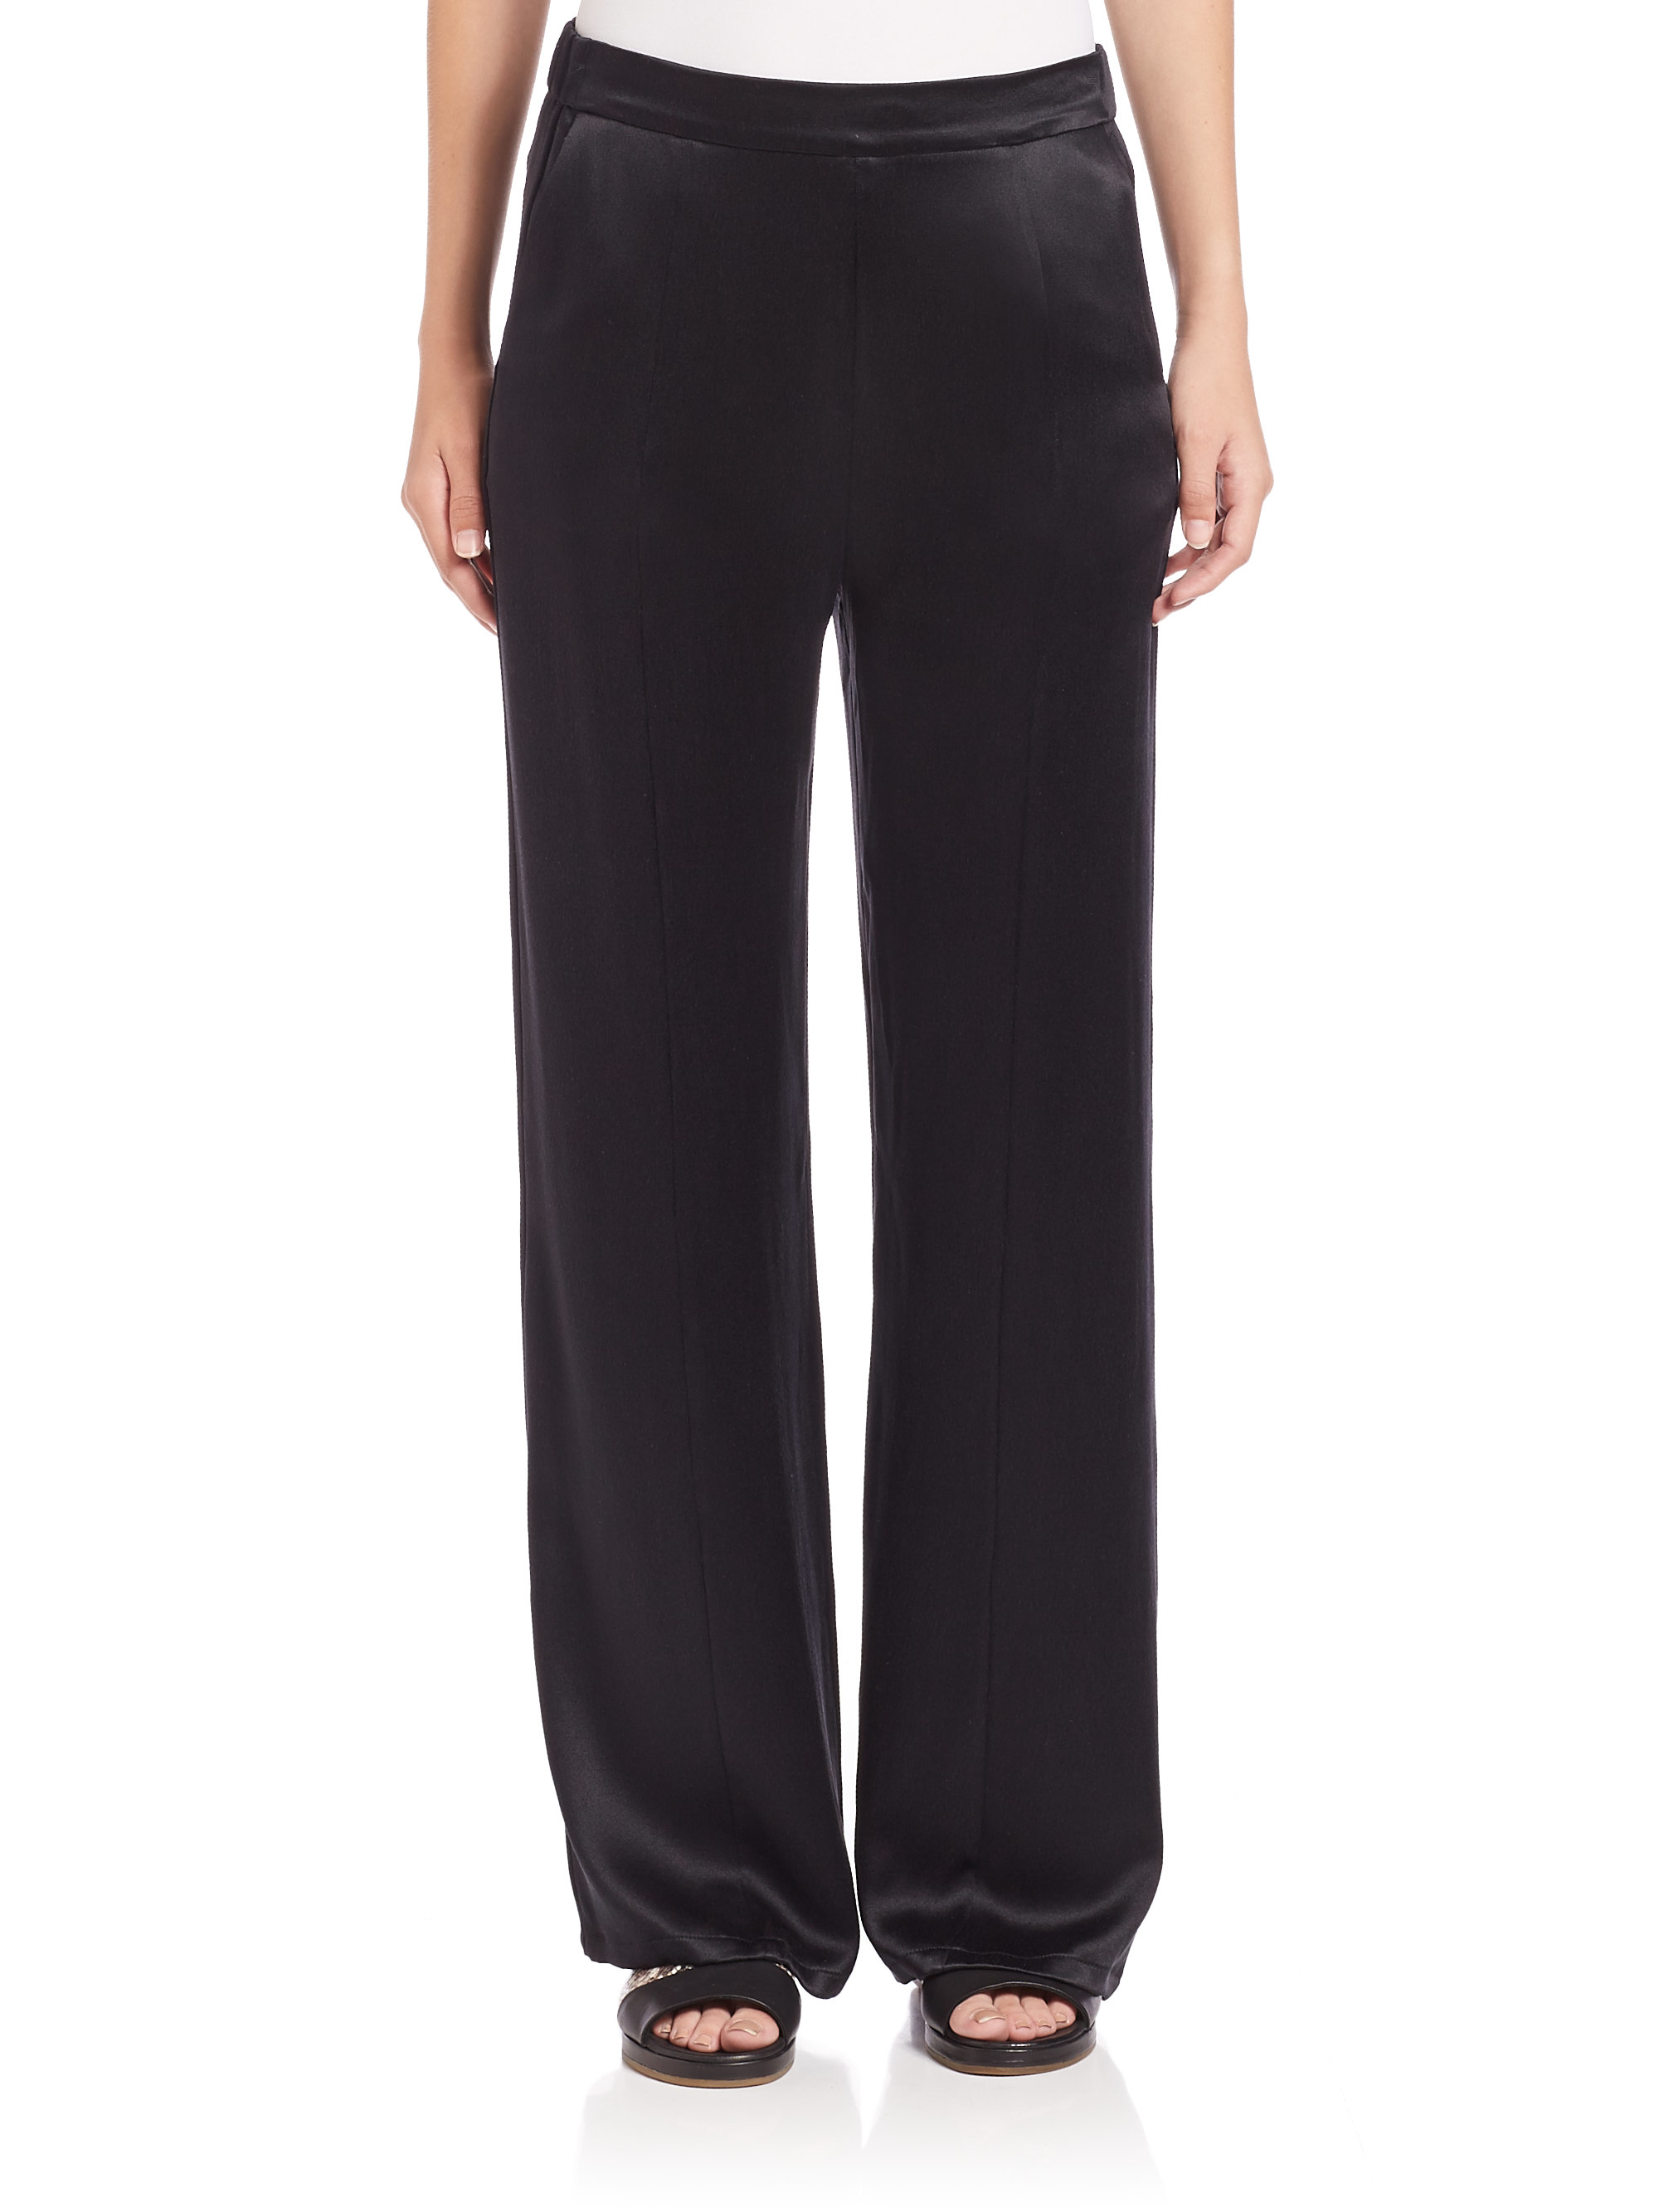 Equipment Beckett Silk Charmeuse Pants in Black | Lyst